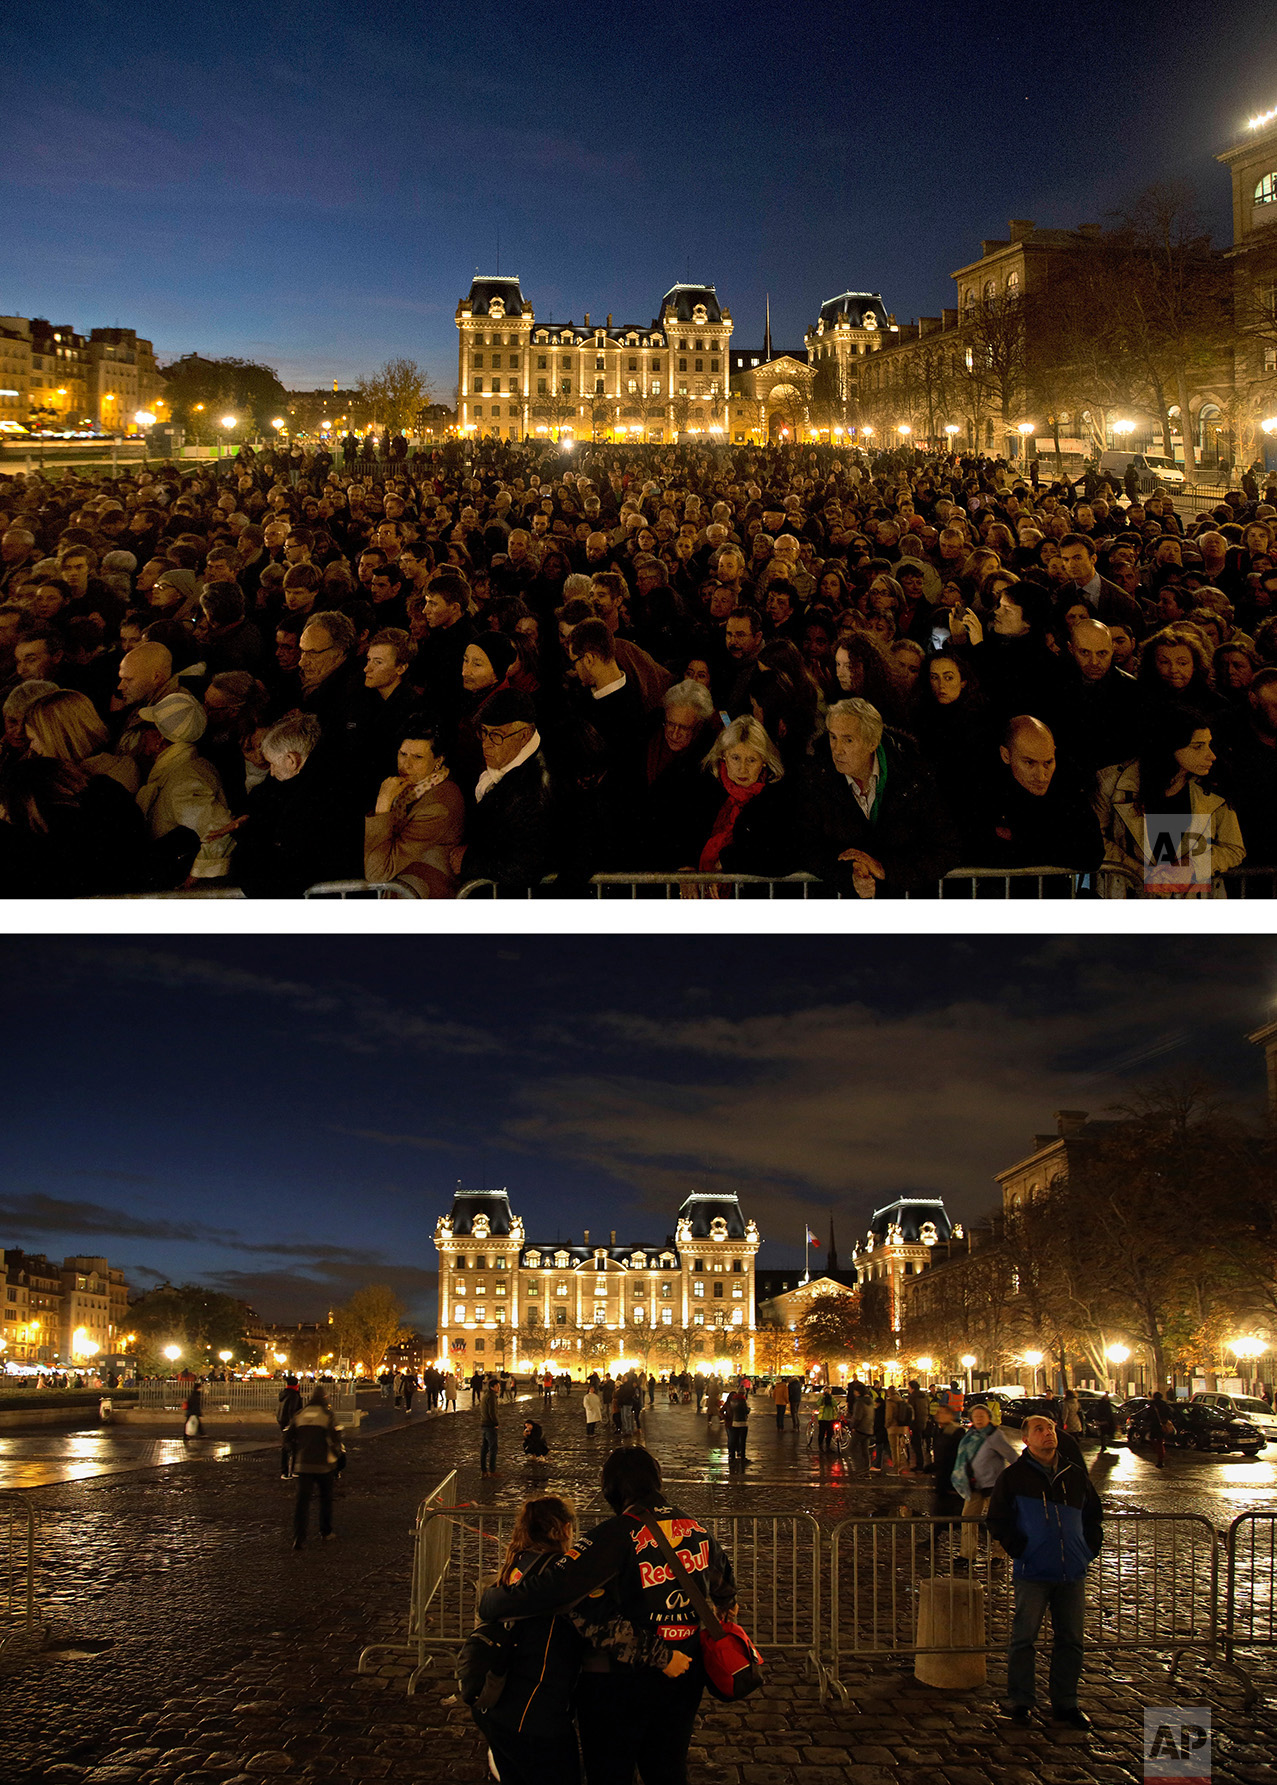 This combination of two photos shows a Sunday, Nov. 15, 2015 photo, top, of people gathering for a national service at Notre Dame cathedral in Paris, for the victims of the terror attack, and people walking through and standing outside the cathedral, bottom, on Wednesday Nov. 9, 2016. (AP Photo/Daniel Ochoa de Olza,Thibault Camus)